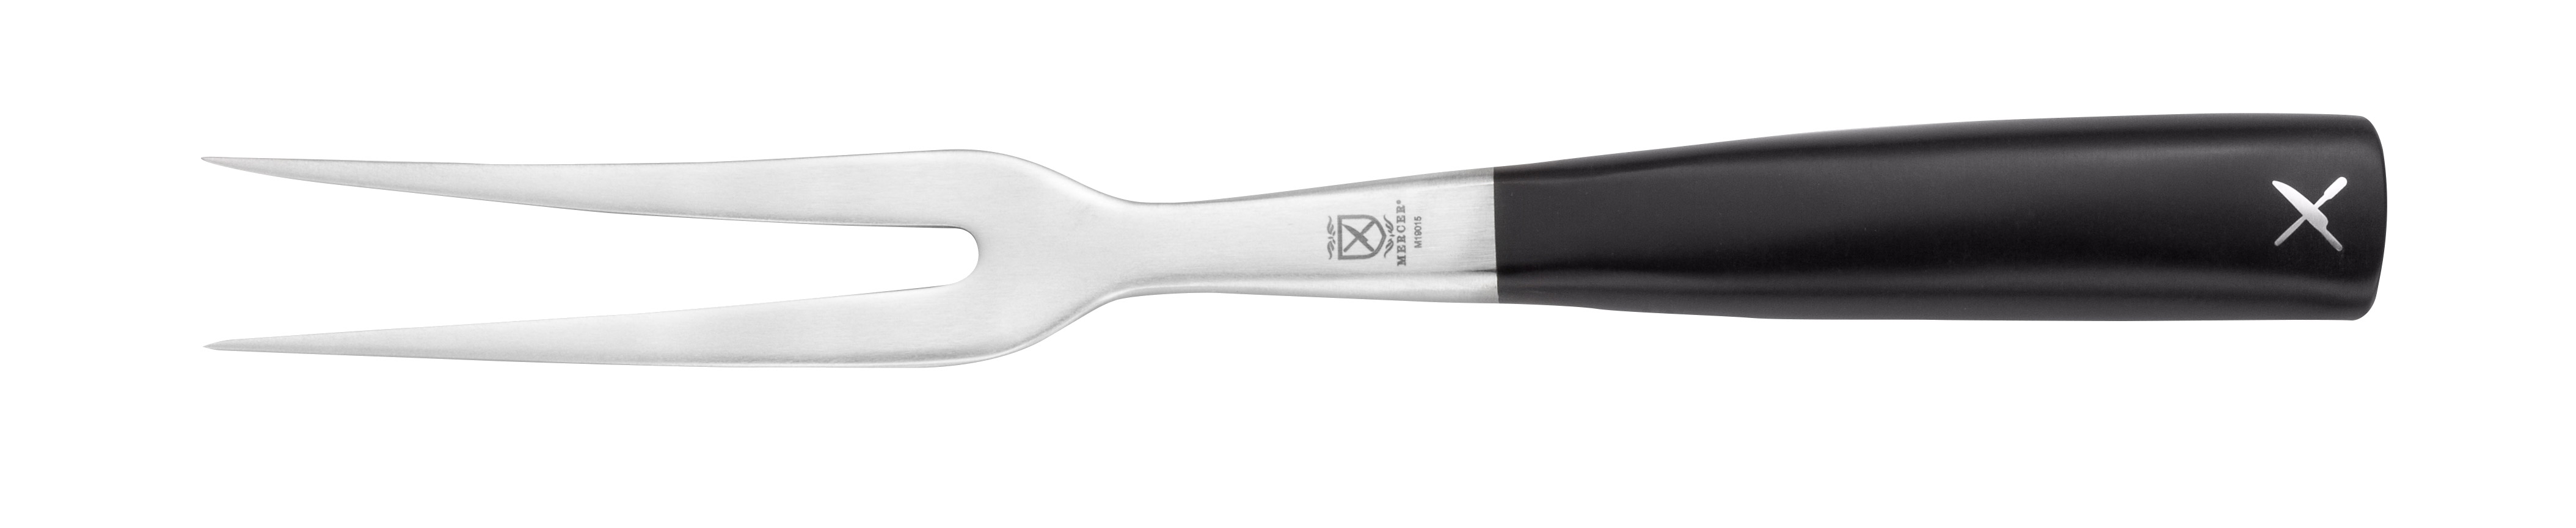 Mercer Culinary M19015 fork, cook's